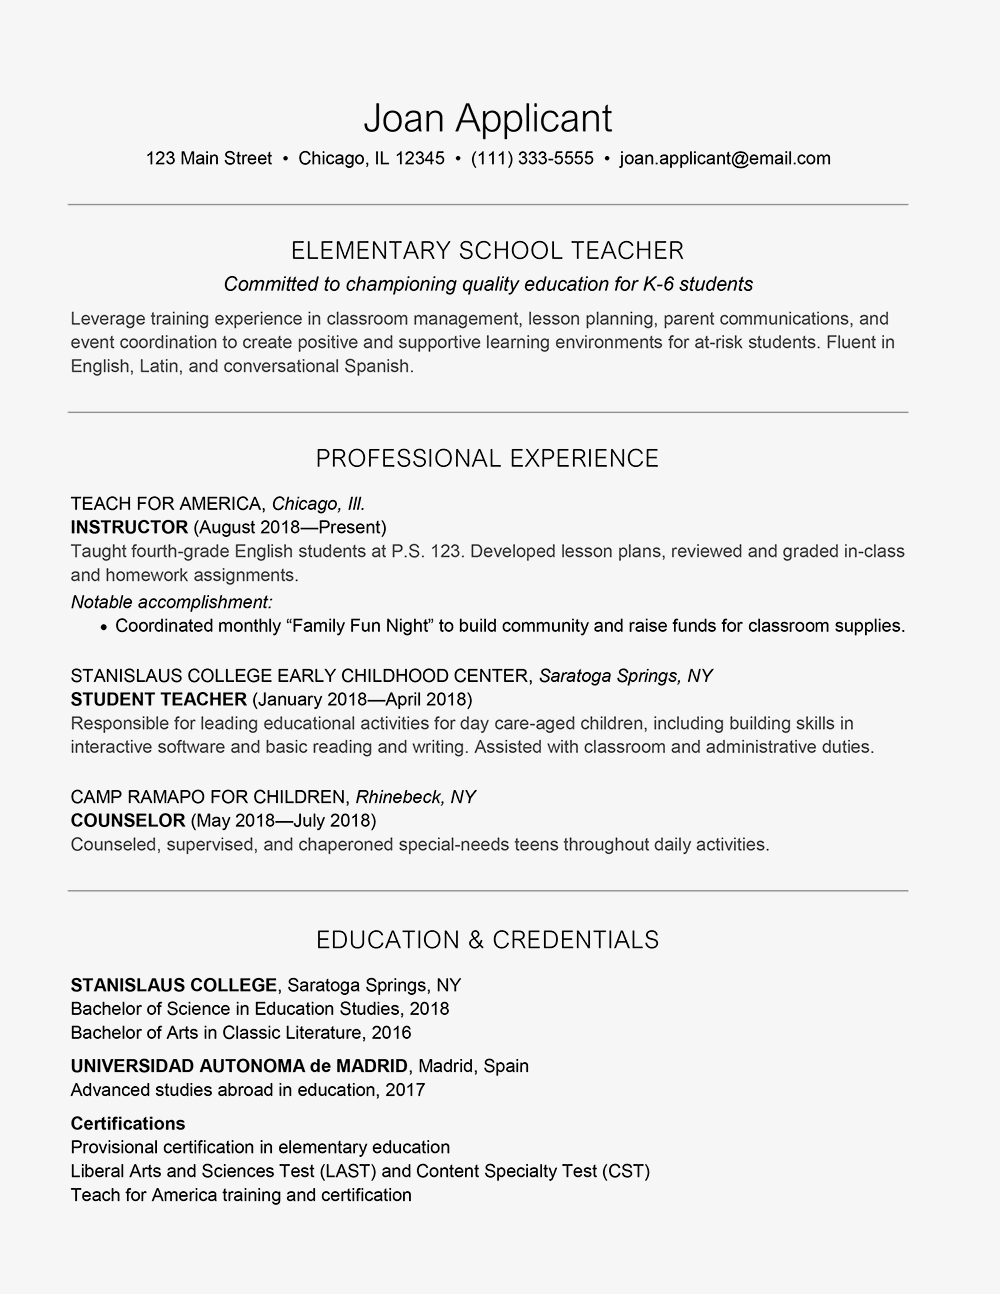 Sample Cover Letter And Resume For A Teacher